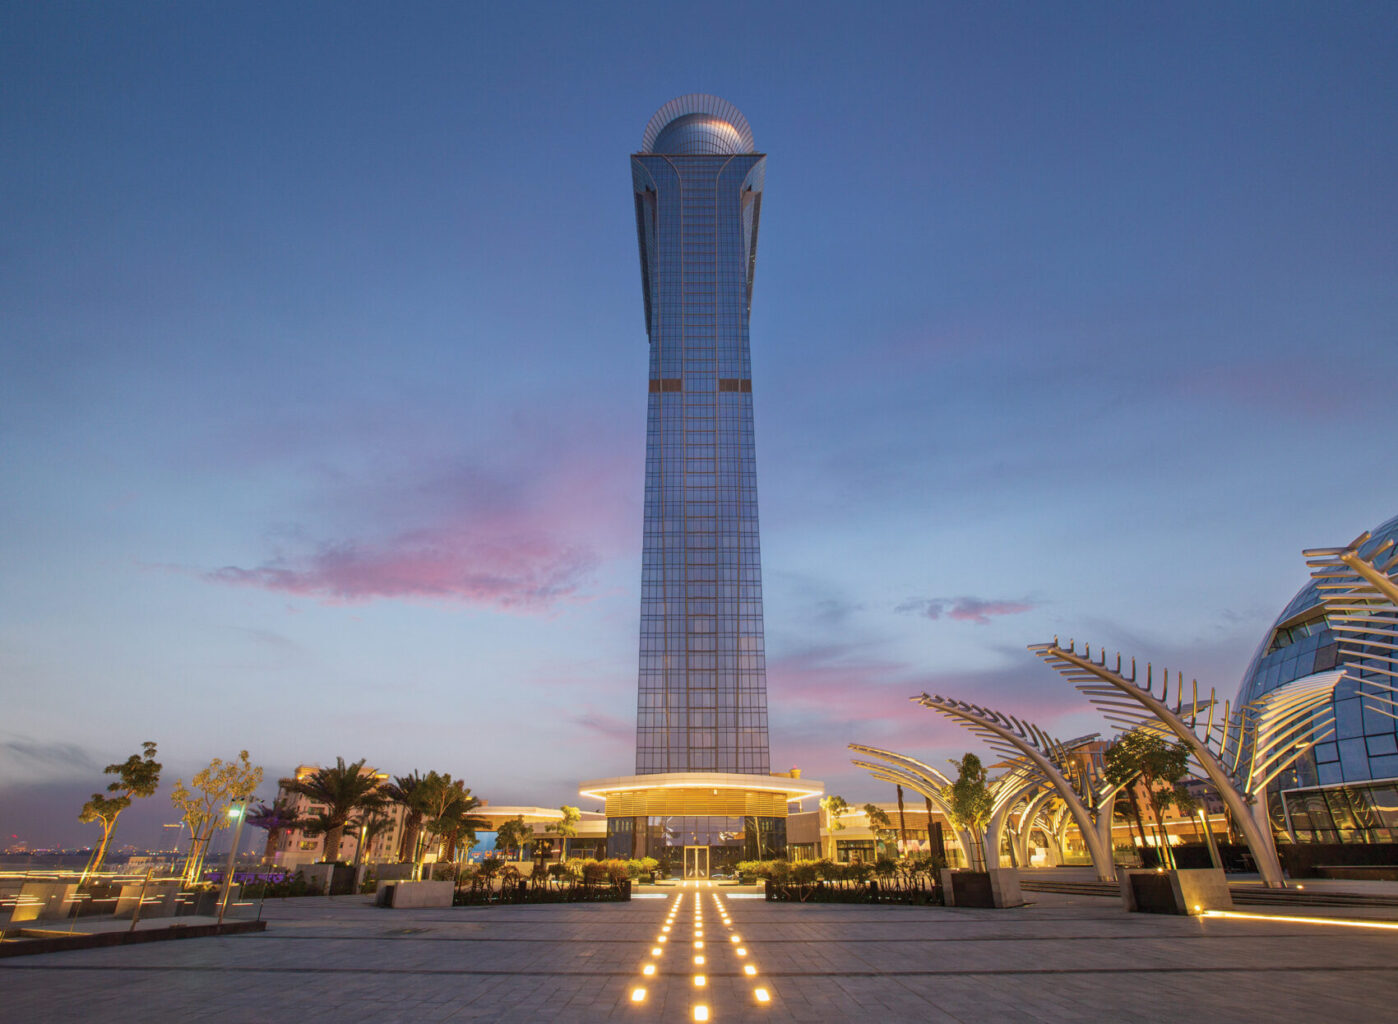 Nakheel's Palm Tower 95% completed